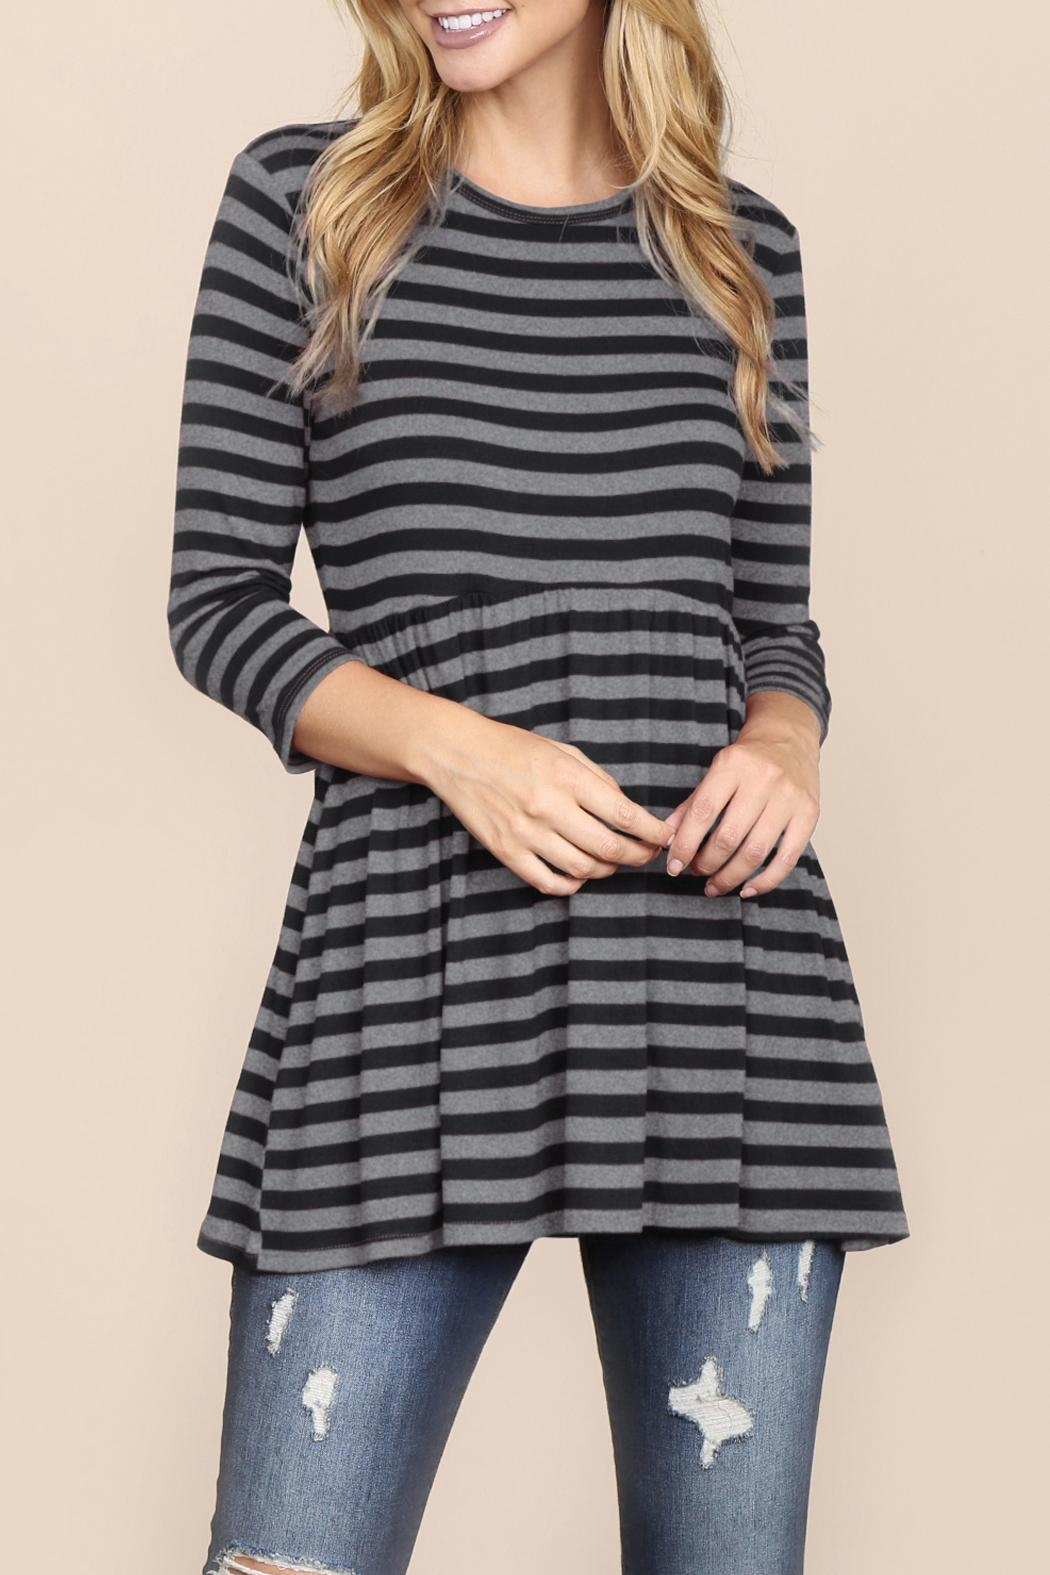 Riah Fashion Everyday-Half-Inch Striped-Tunic - Main Image